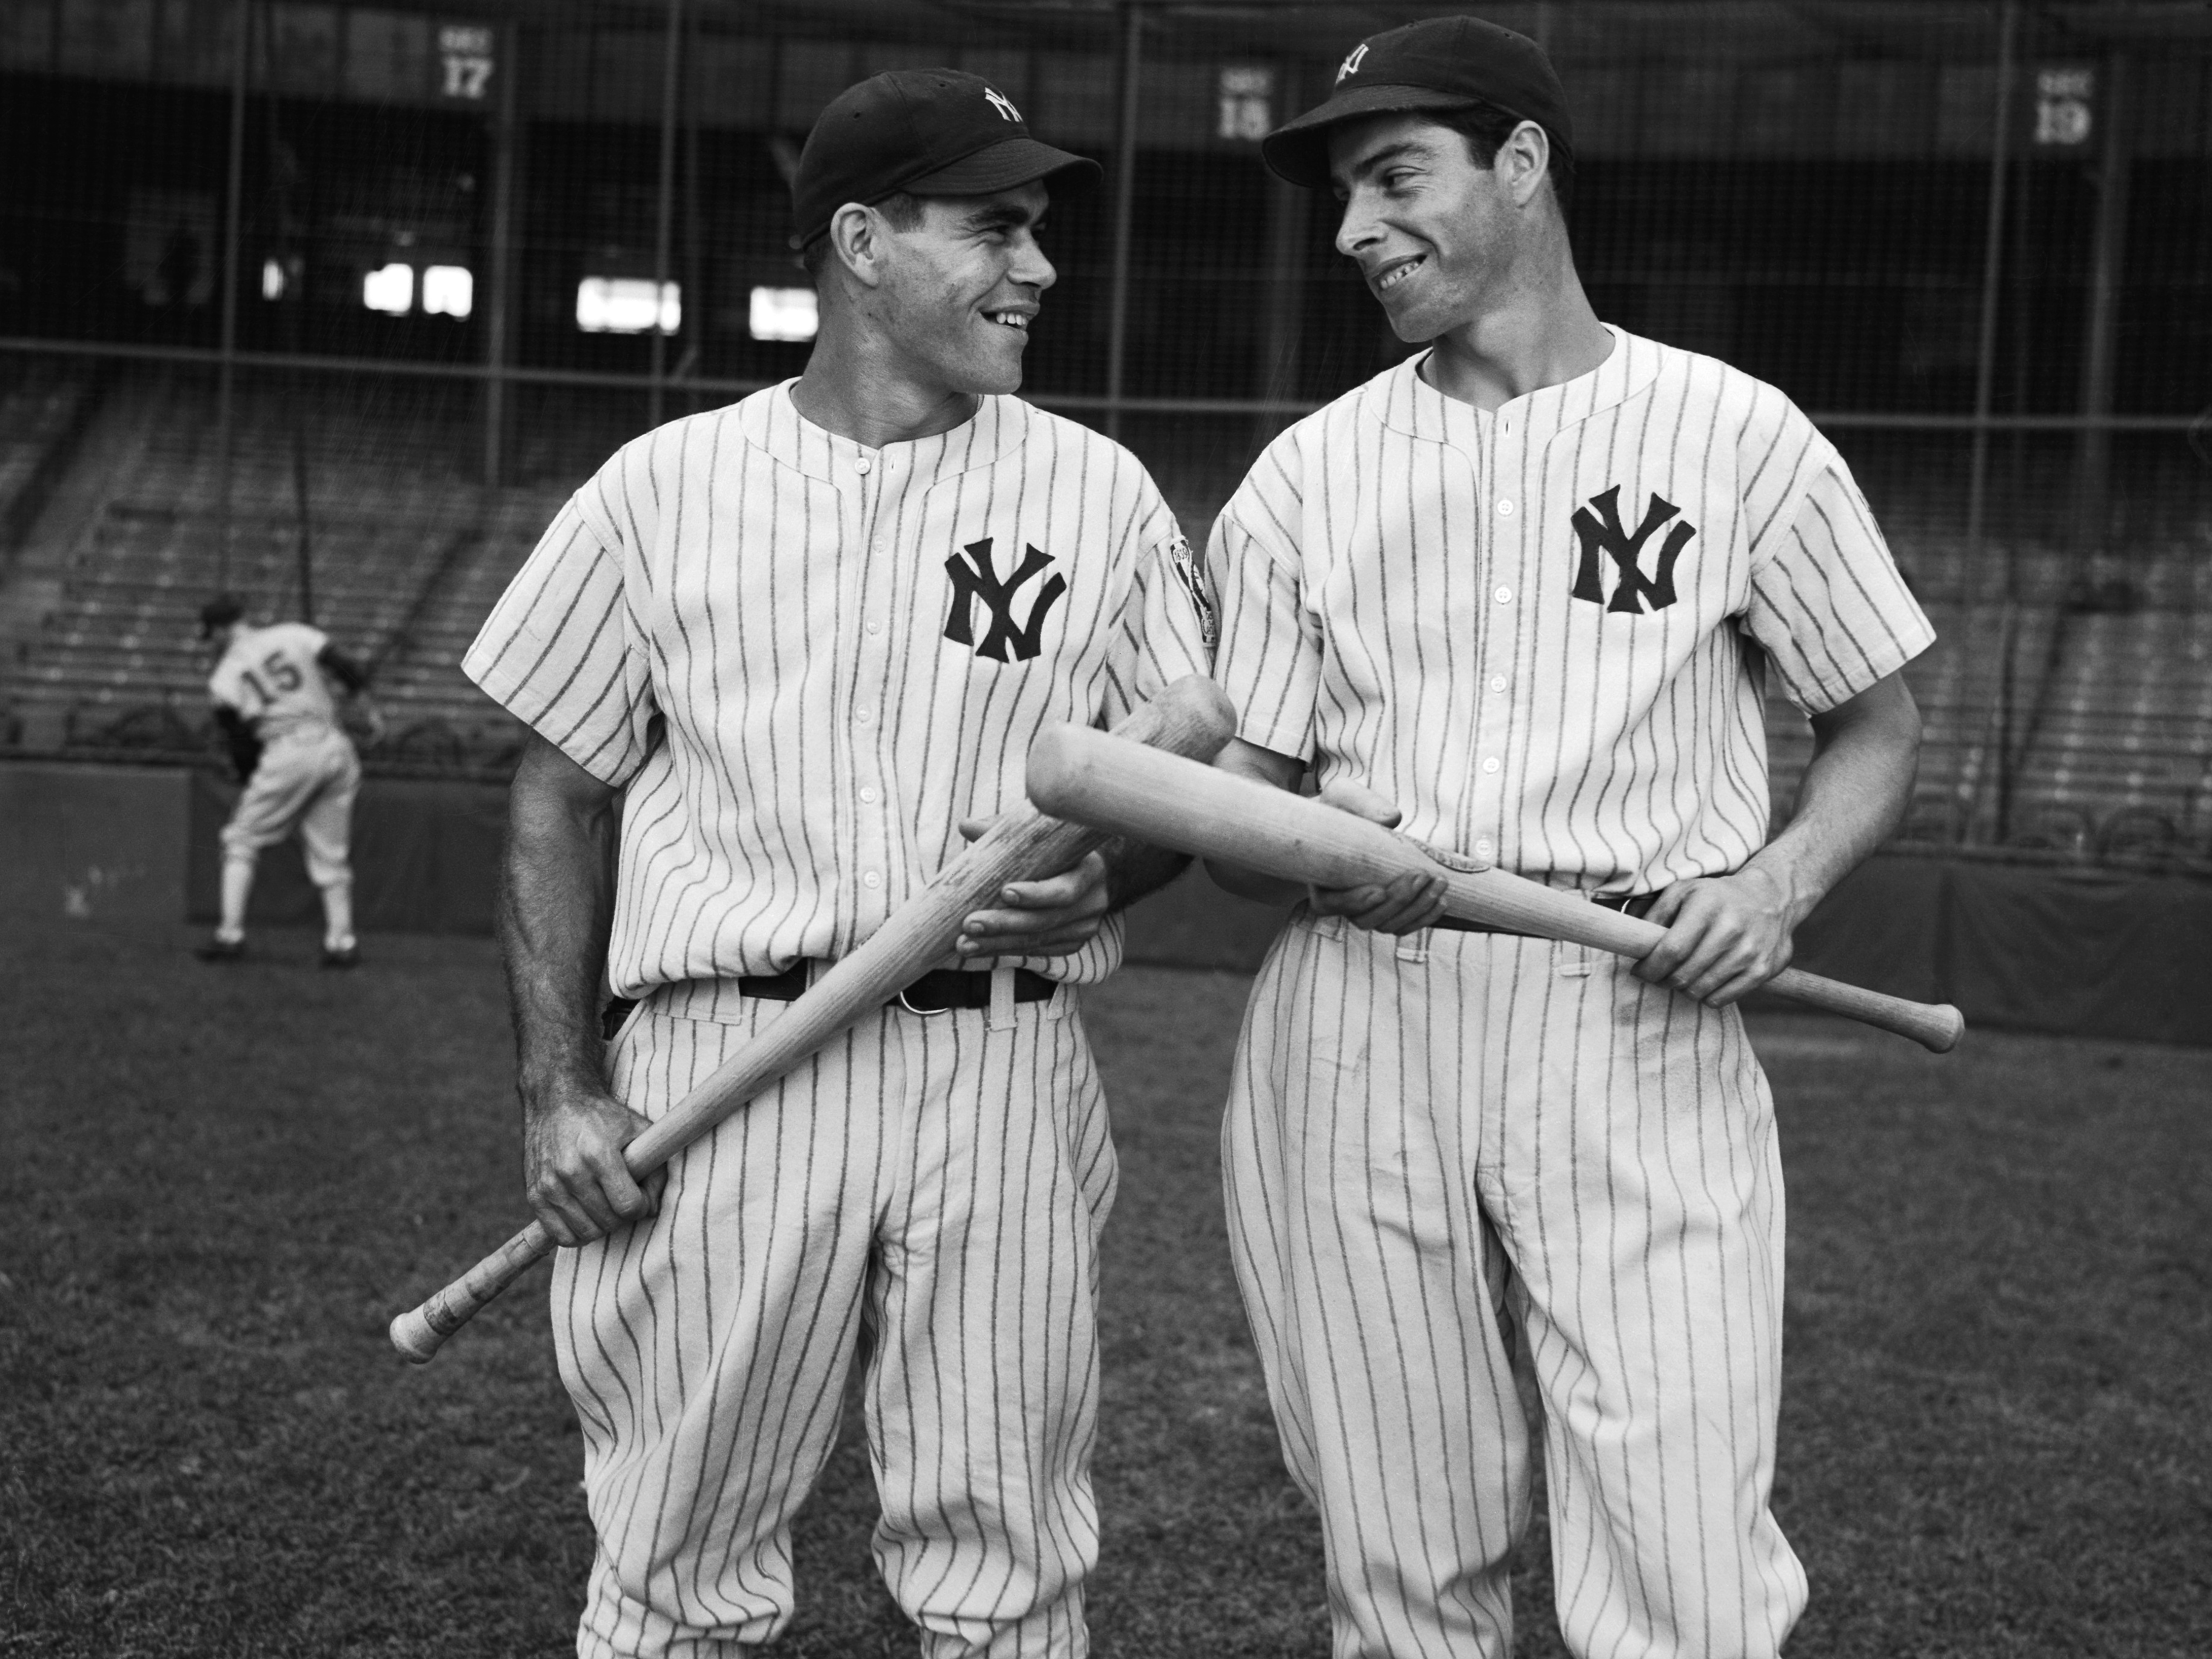 Portrait of Joe DiMaggio with Charlie Keller